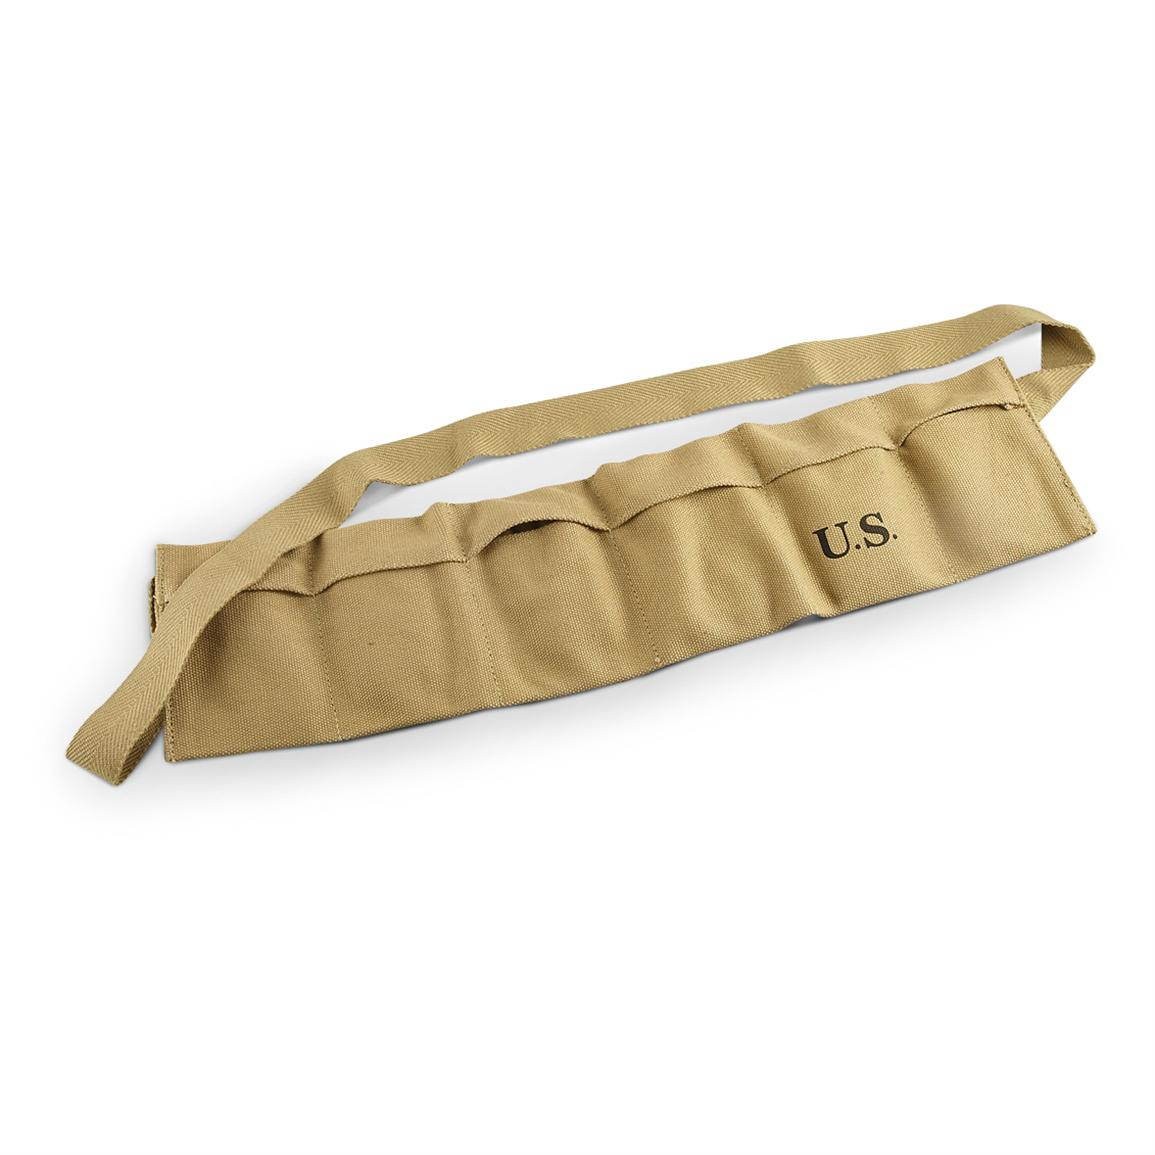 Reproduction 6-pocket Ammo Bandolier, Tan